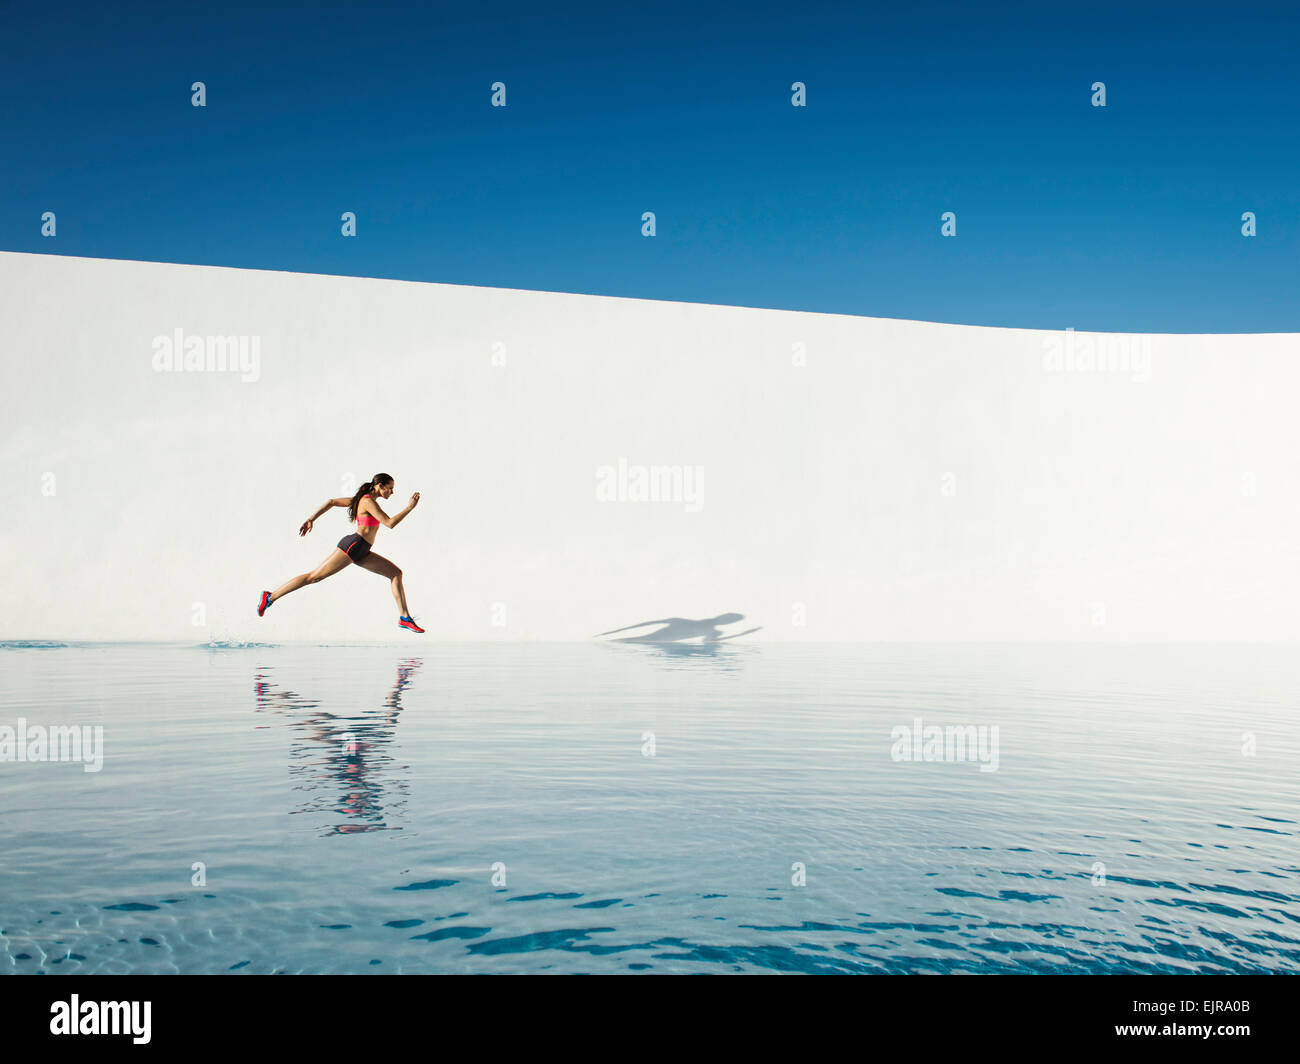 Caucasian woman running on water surface Banque D'Images